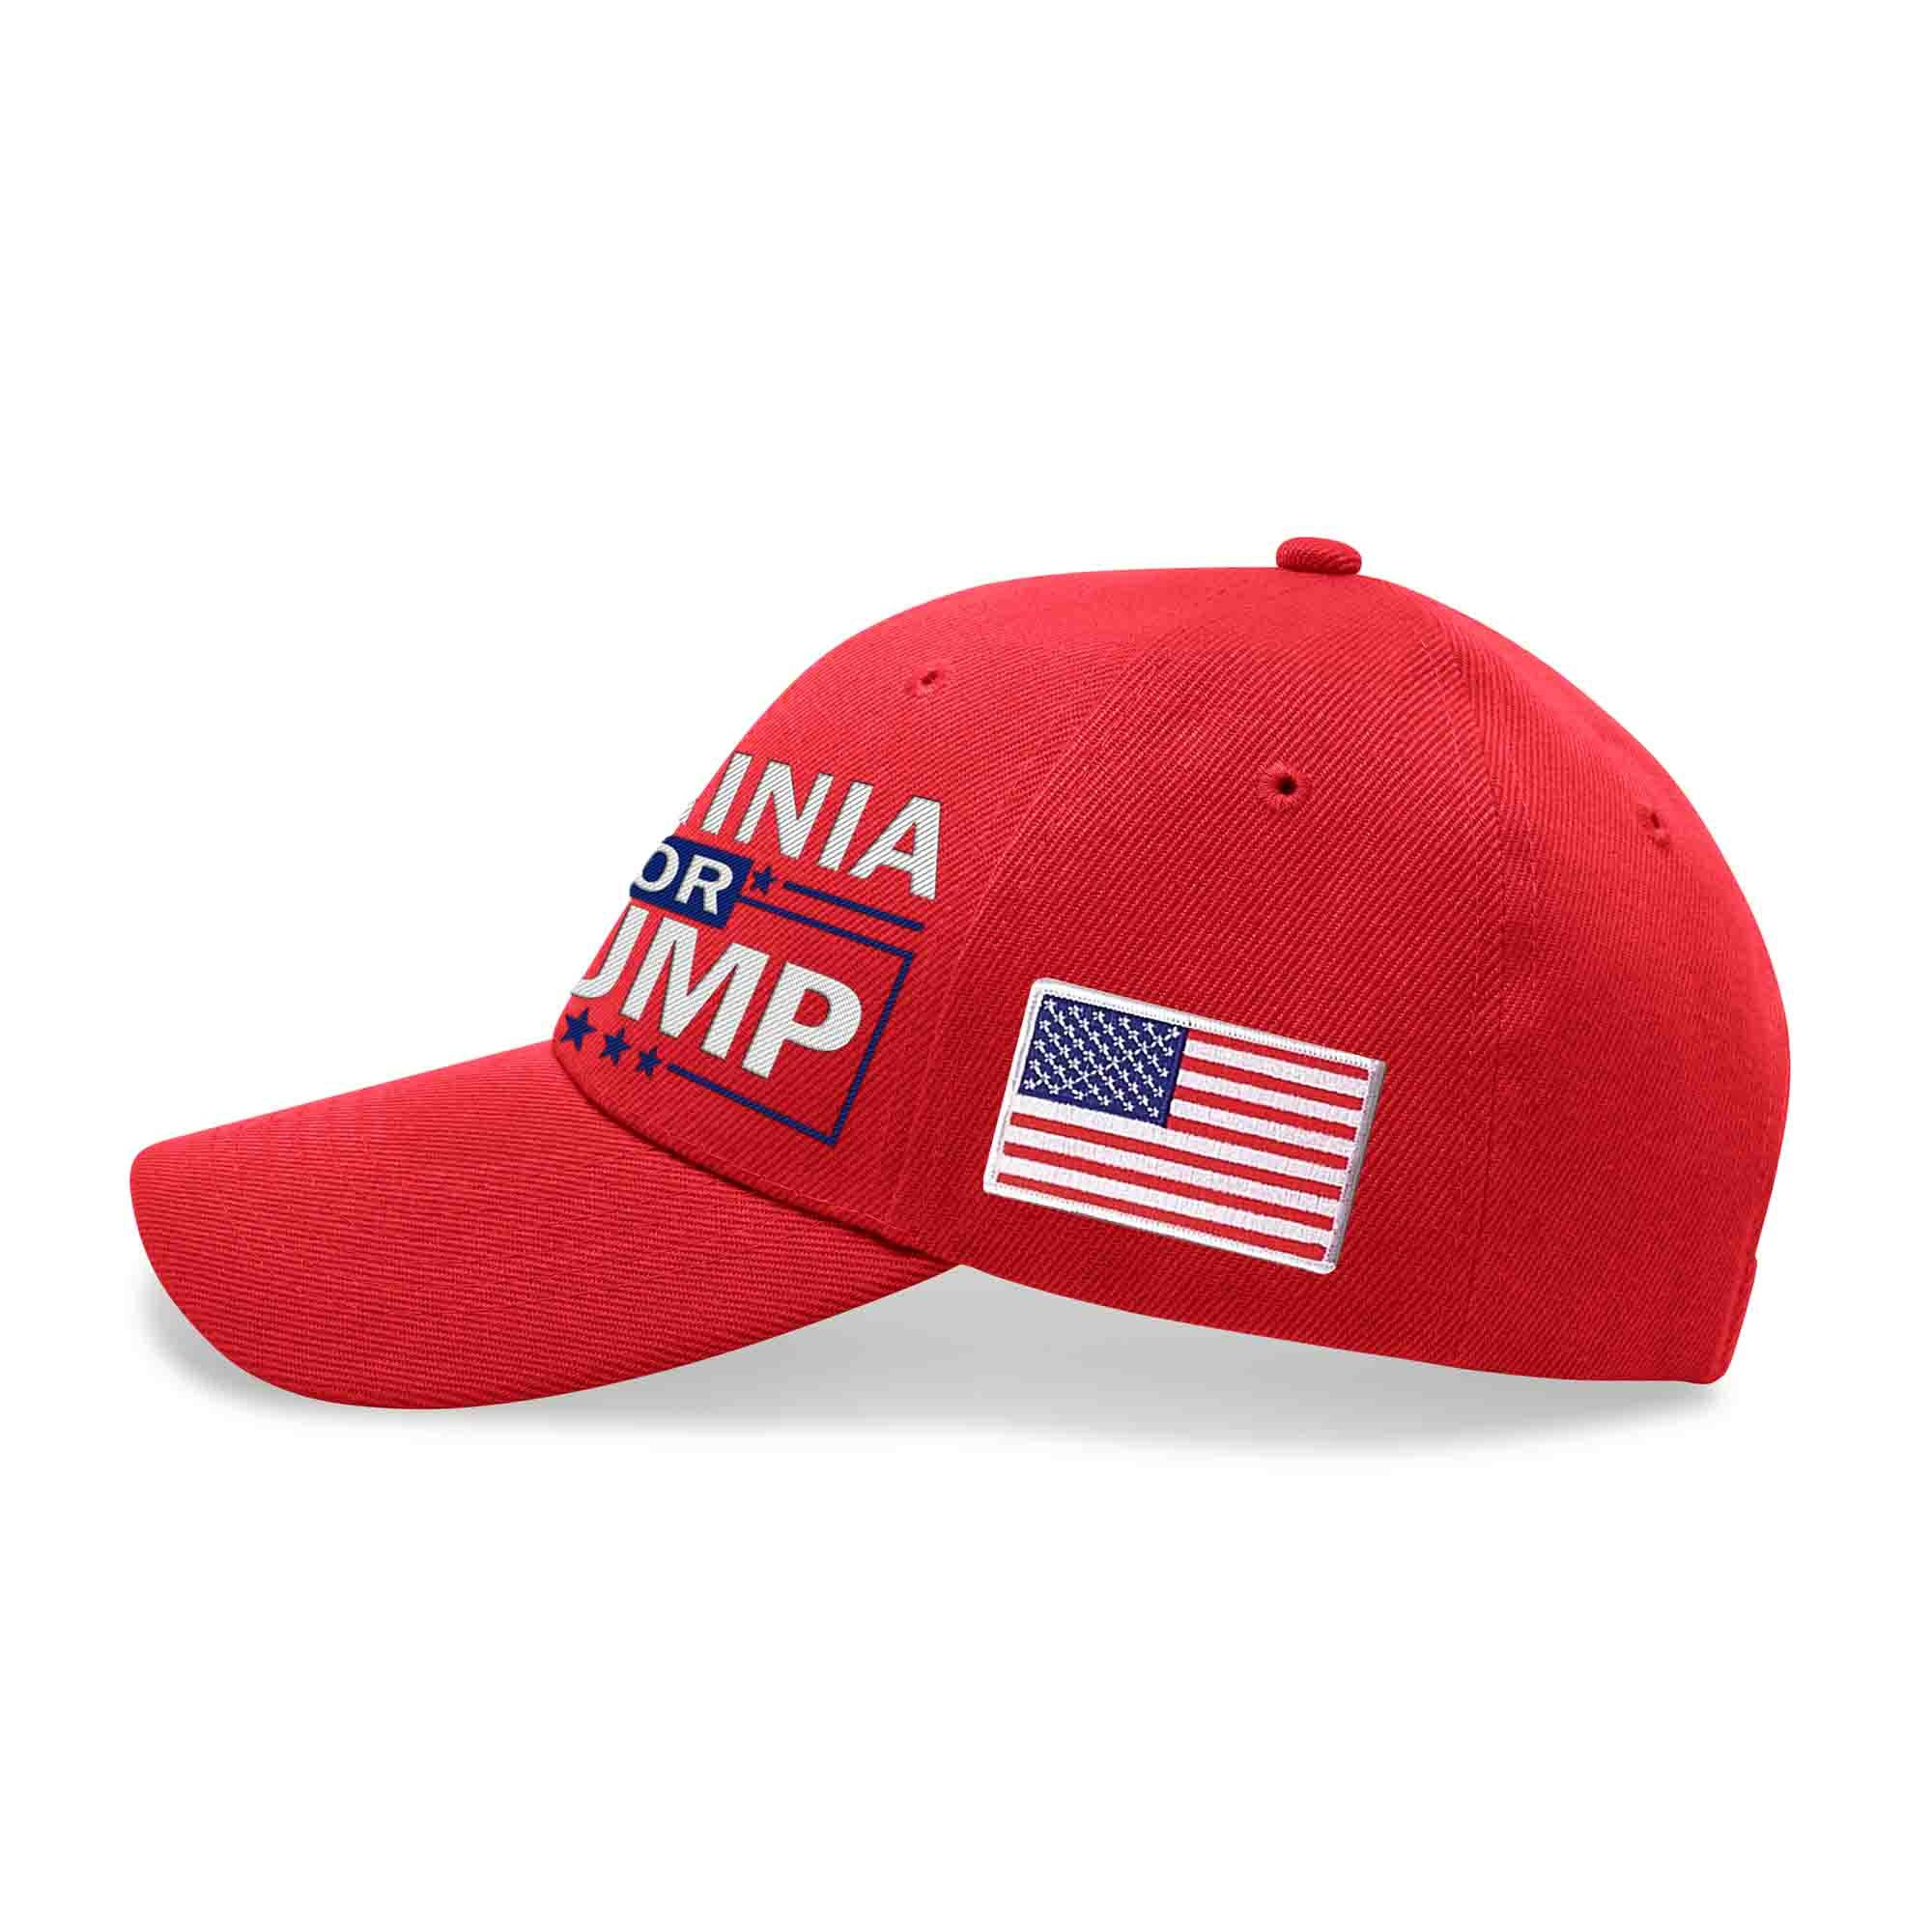 Virginia For Trump Limited Edition Embroidered Hat